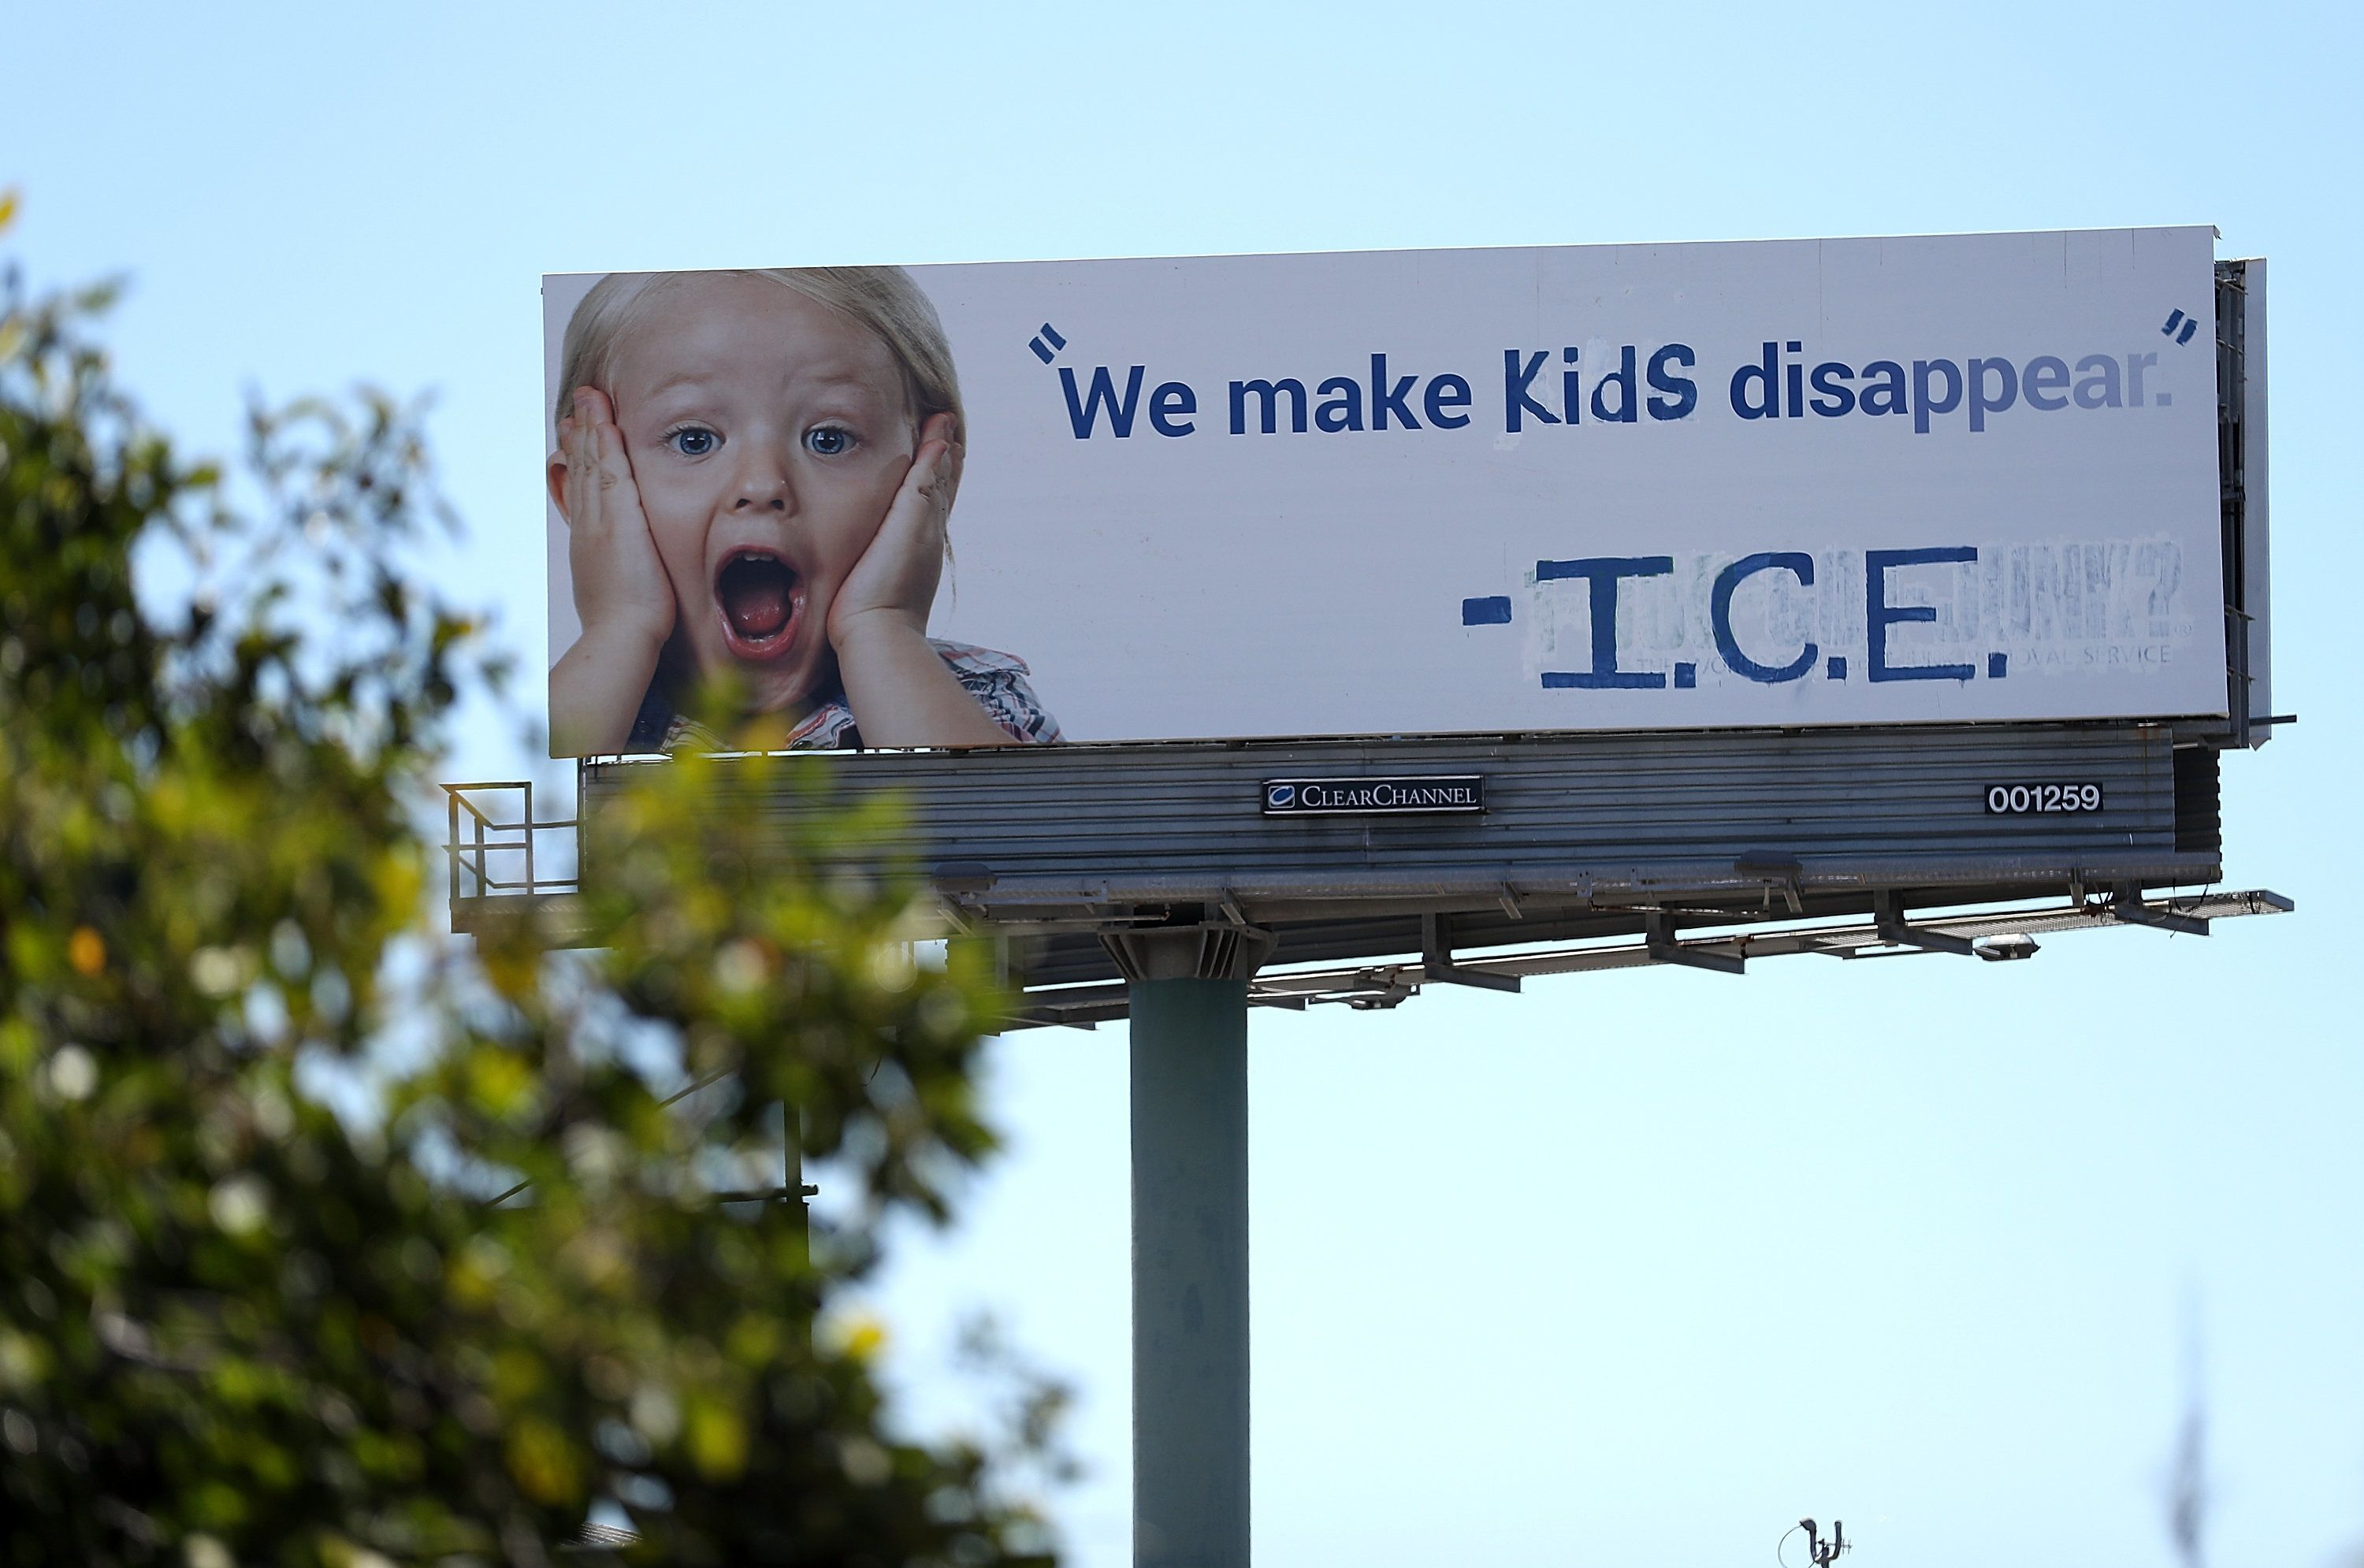 A vandalized billboard in Emeryville, California, shows a message protesting ICE's forcible separation of children